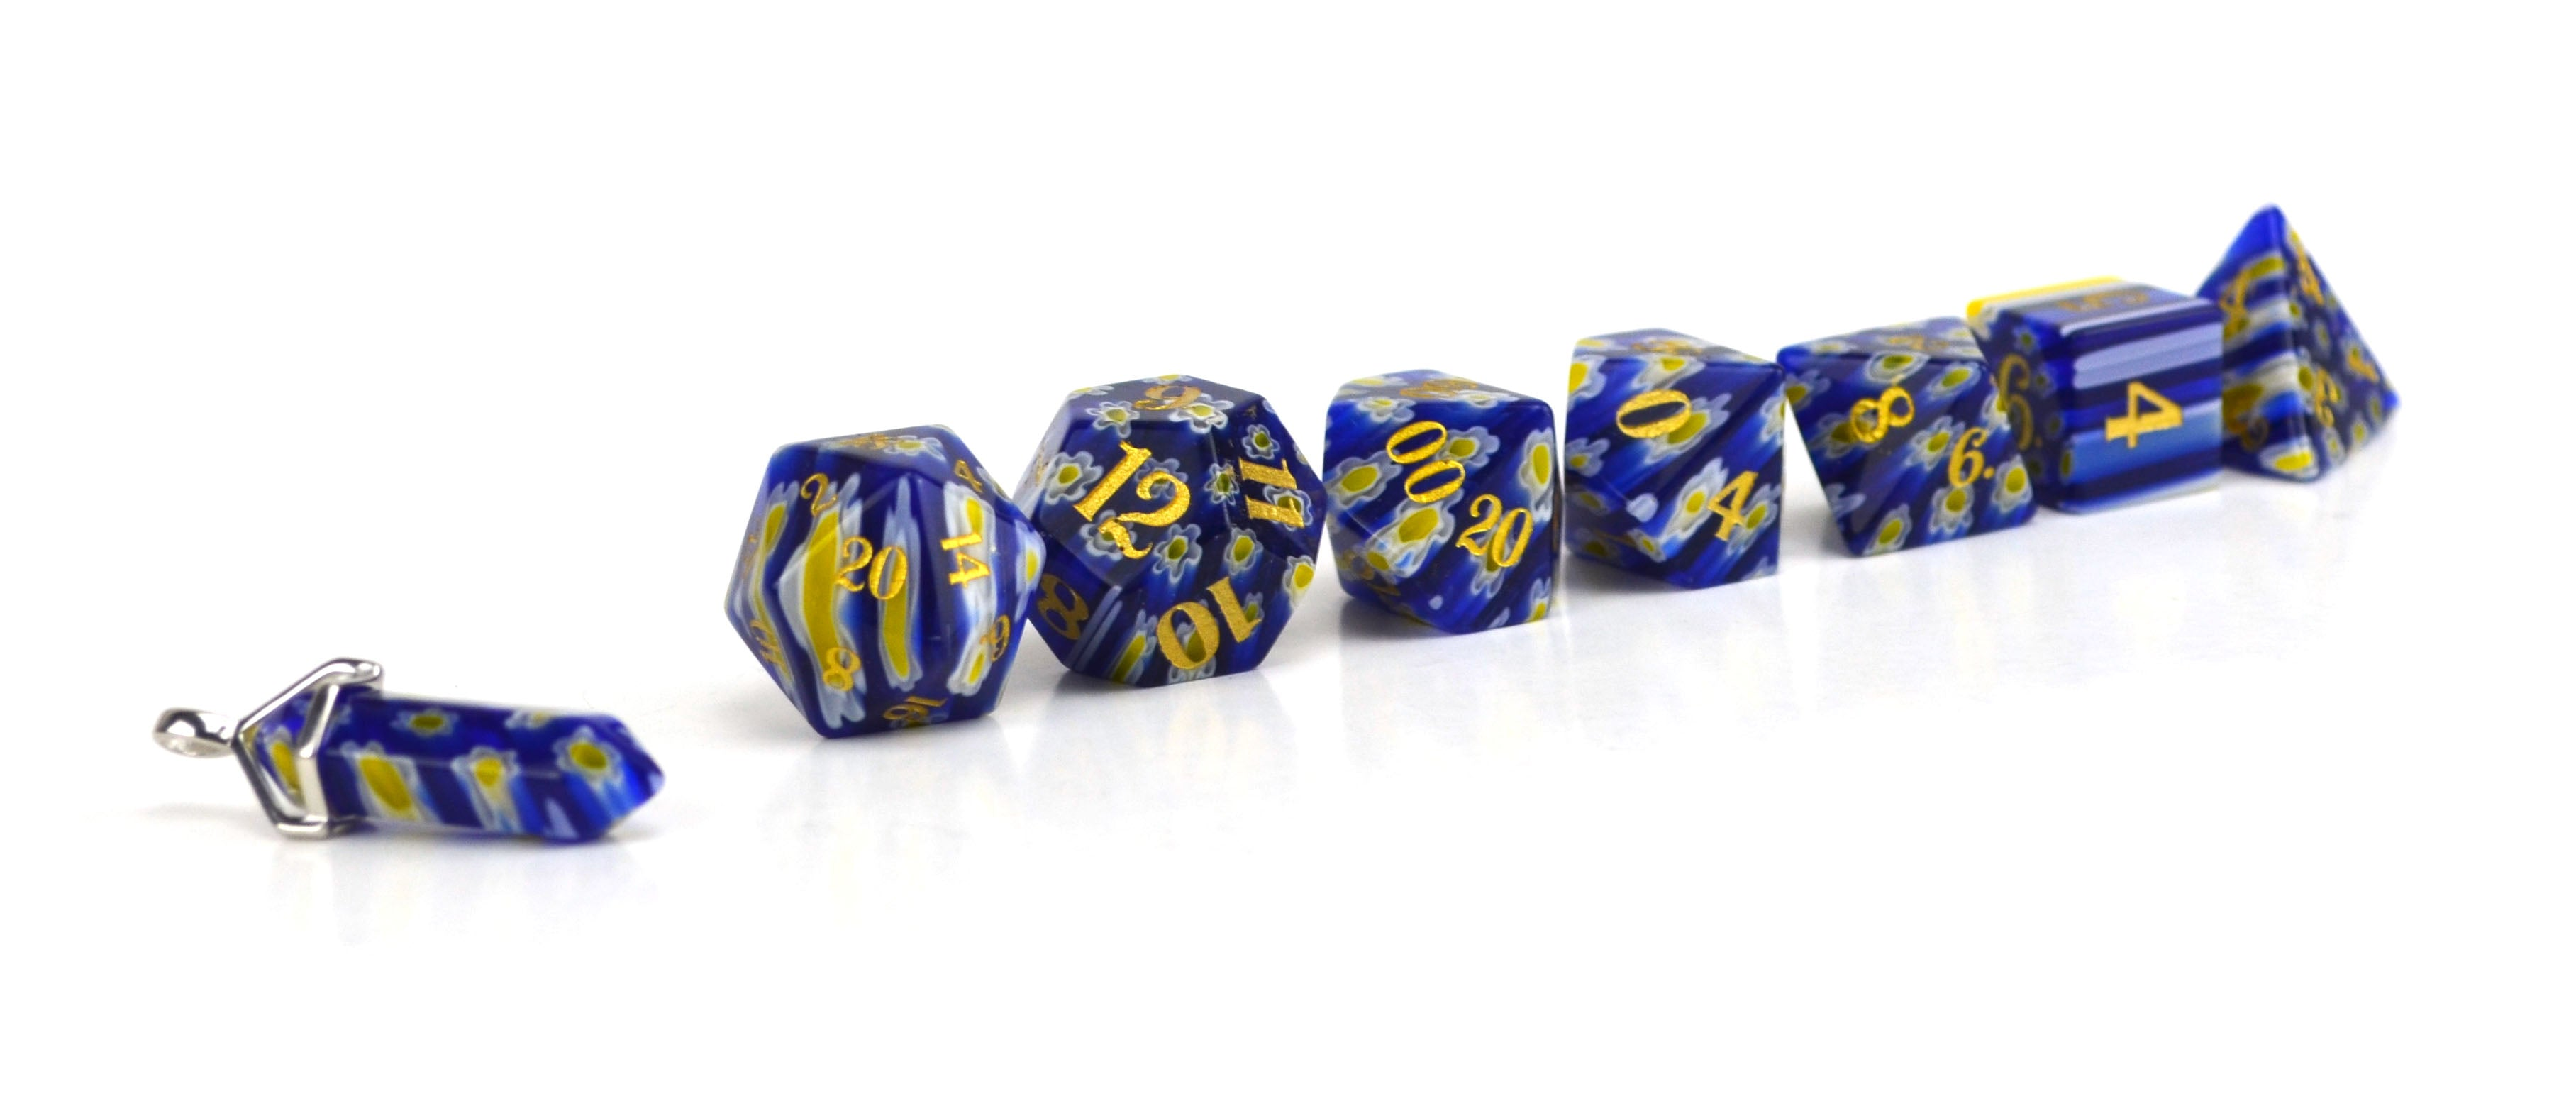 Bluebonnet Candy Glass Dice (JD) Set of 7